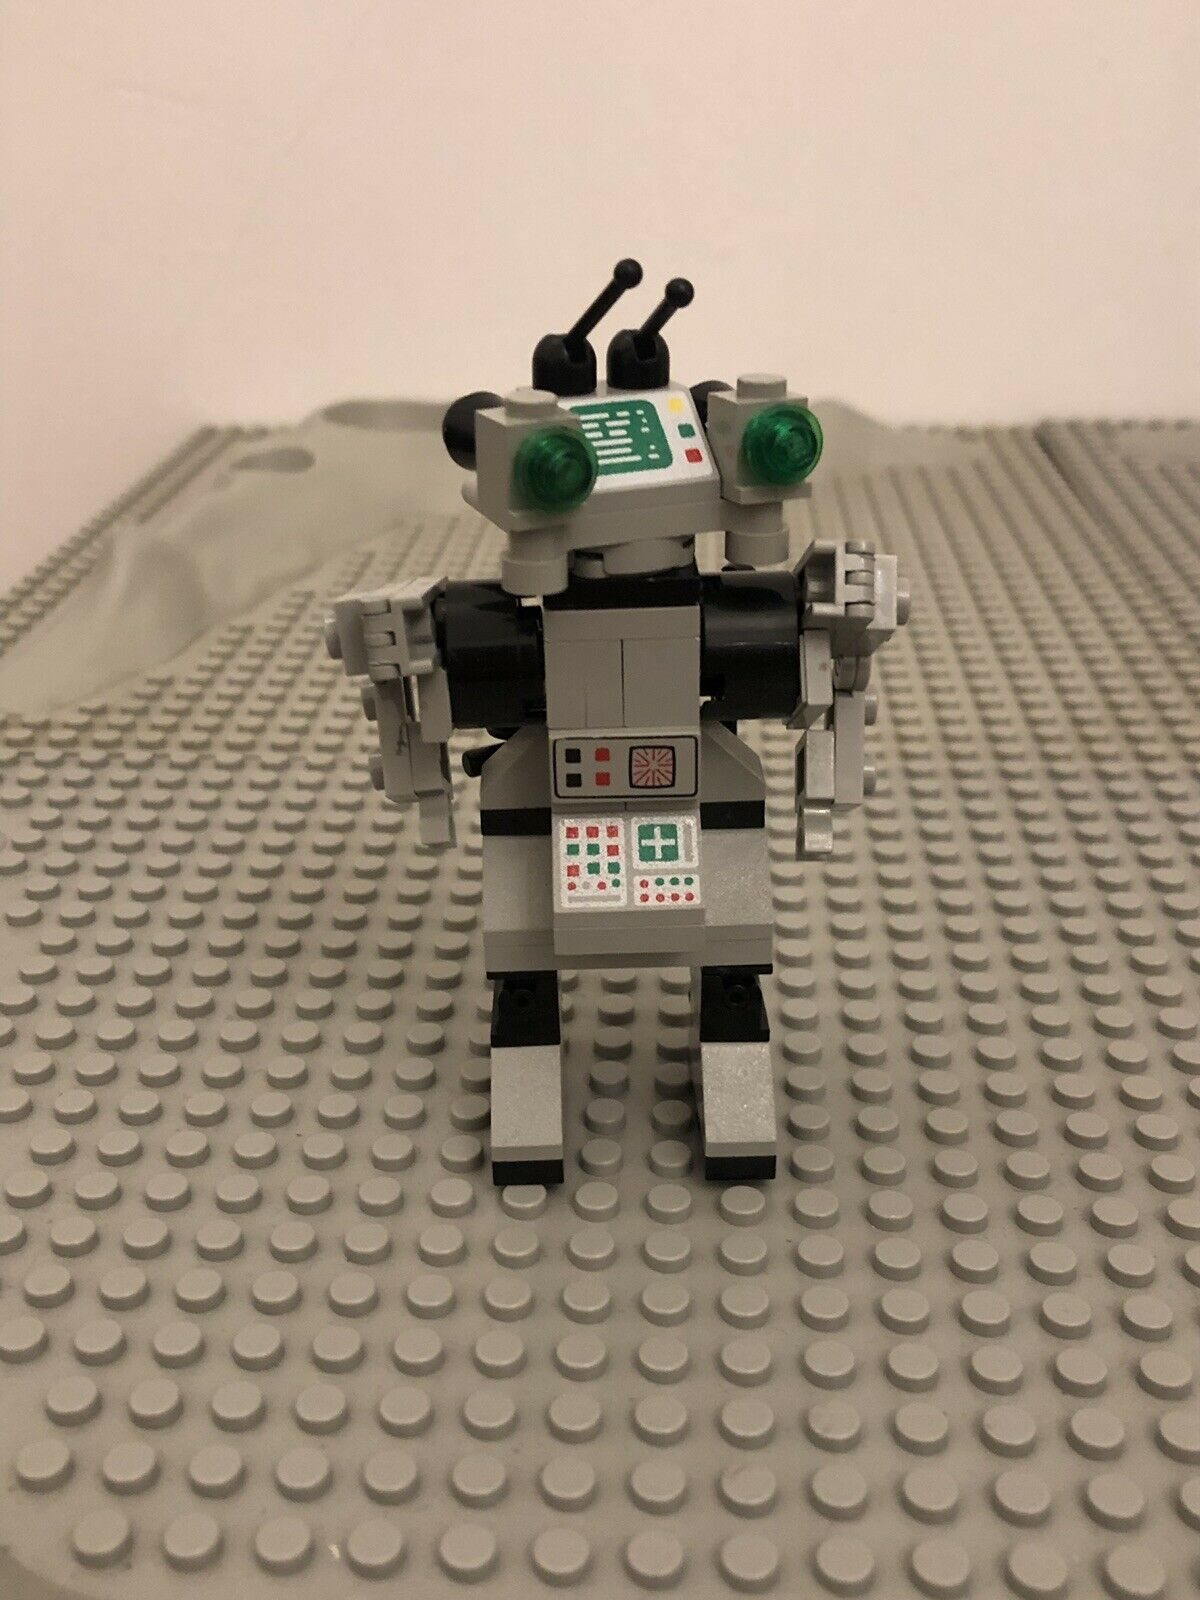 Classic Space Lego - Spy Bot - 1498 - Year 1987